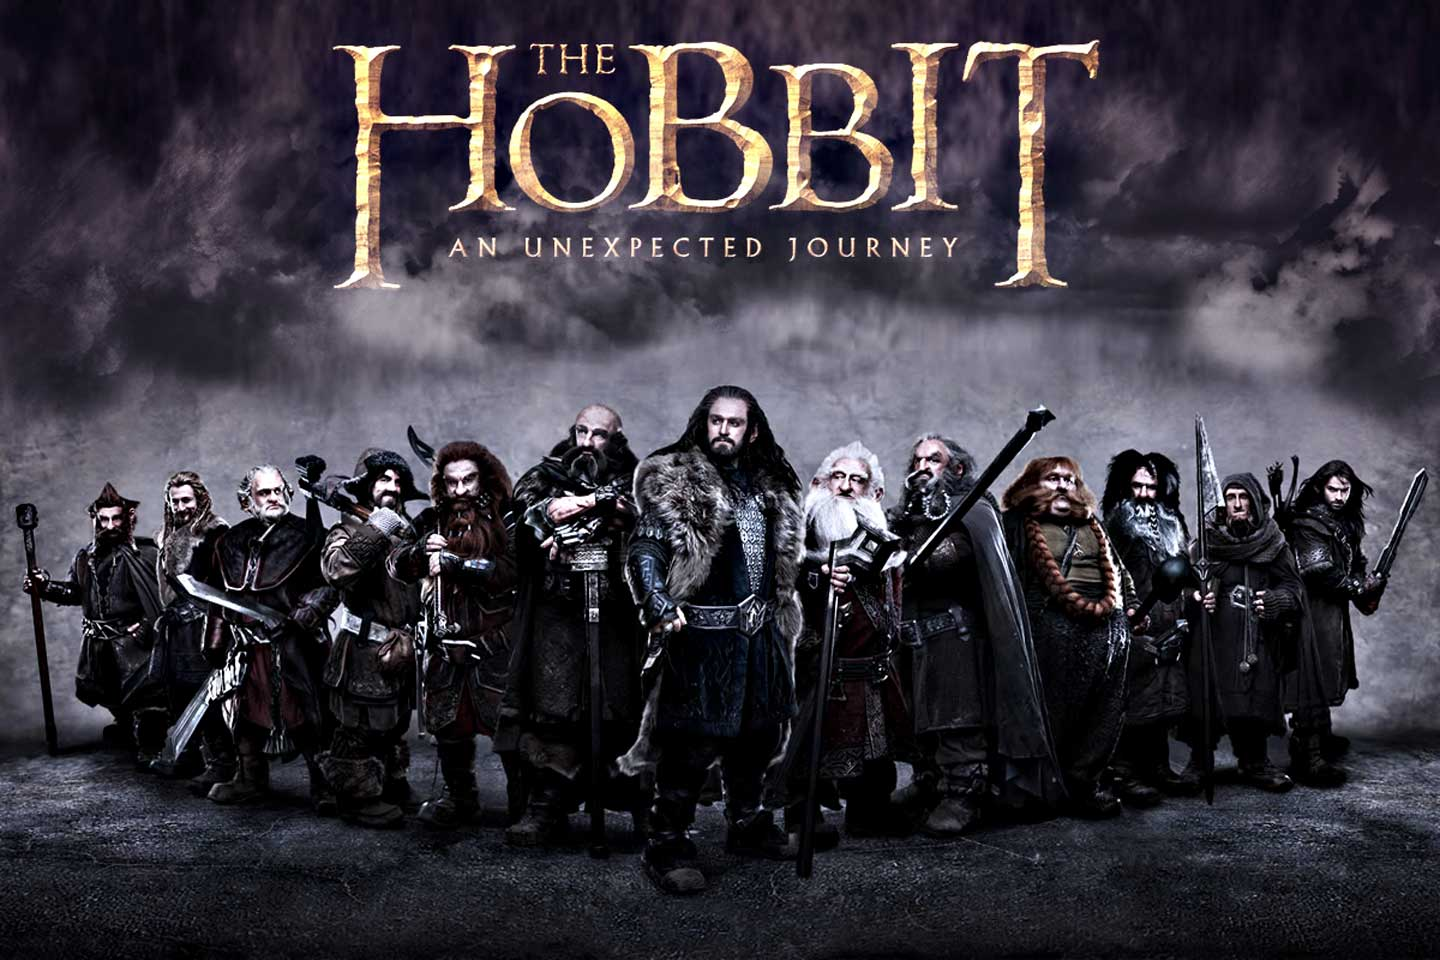 http://1.bp.blogspot.com/-RYmQvC1Fc1o/UERzYwBkkJI/AAAAAAAAFP0/jplSPOBAuOc/s1600/the_hobbit_movie_wallpaper.jpg